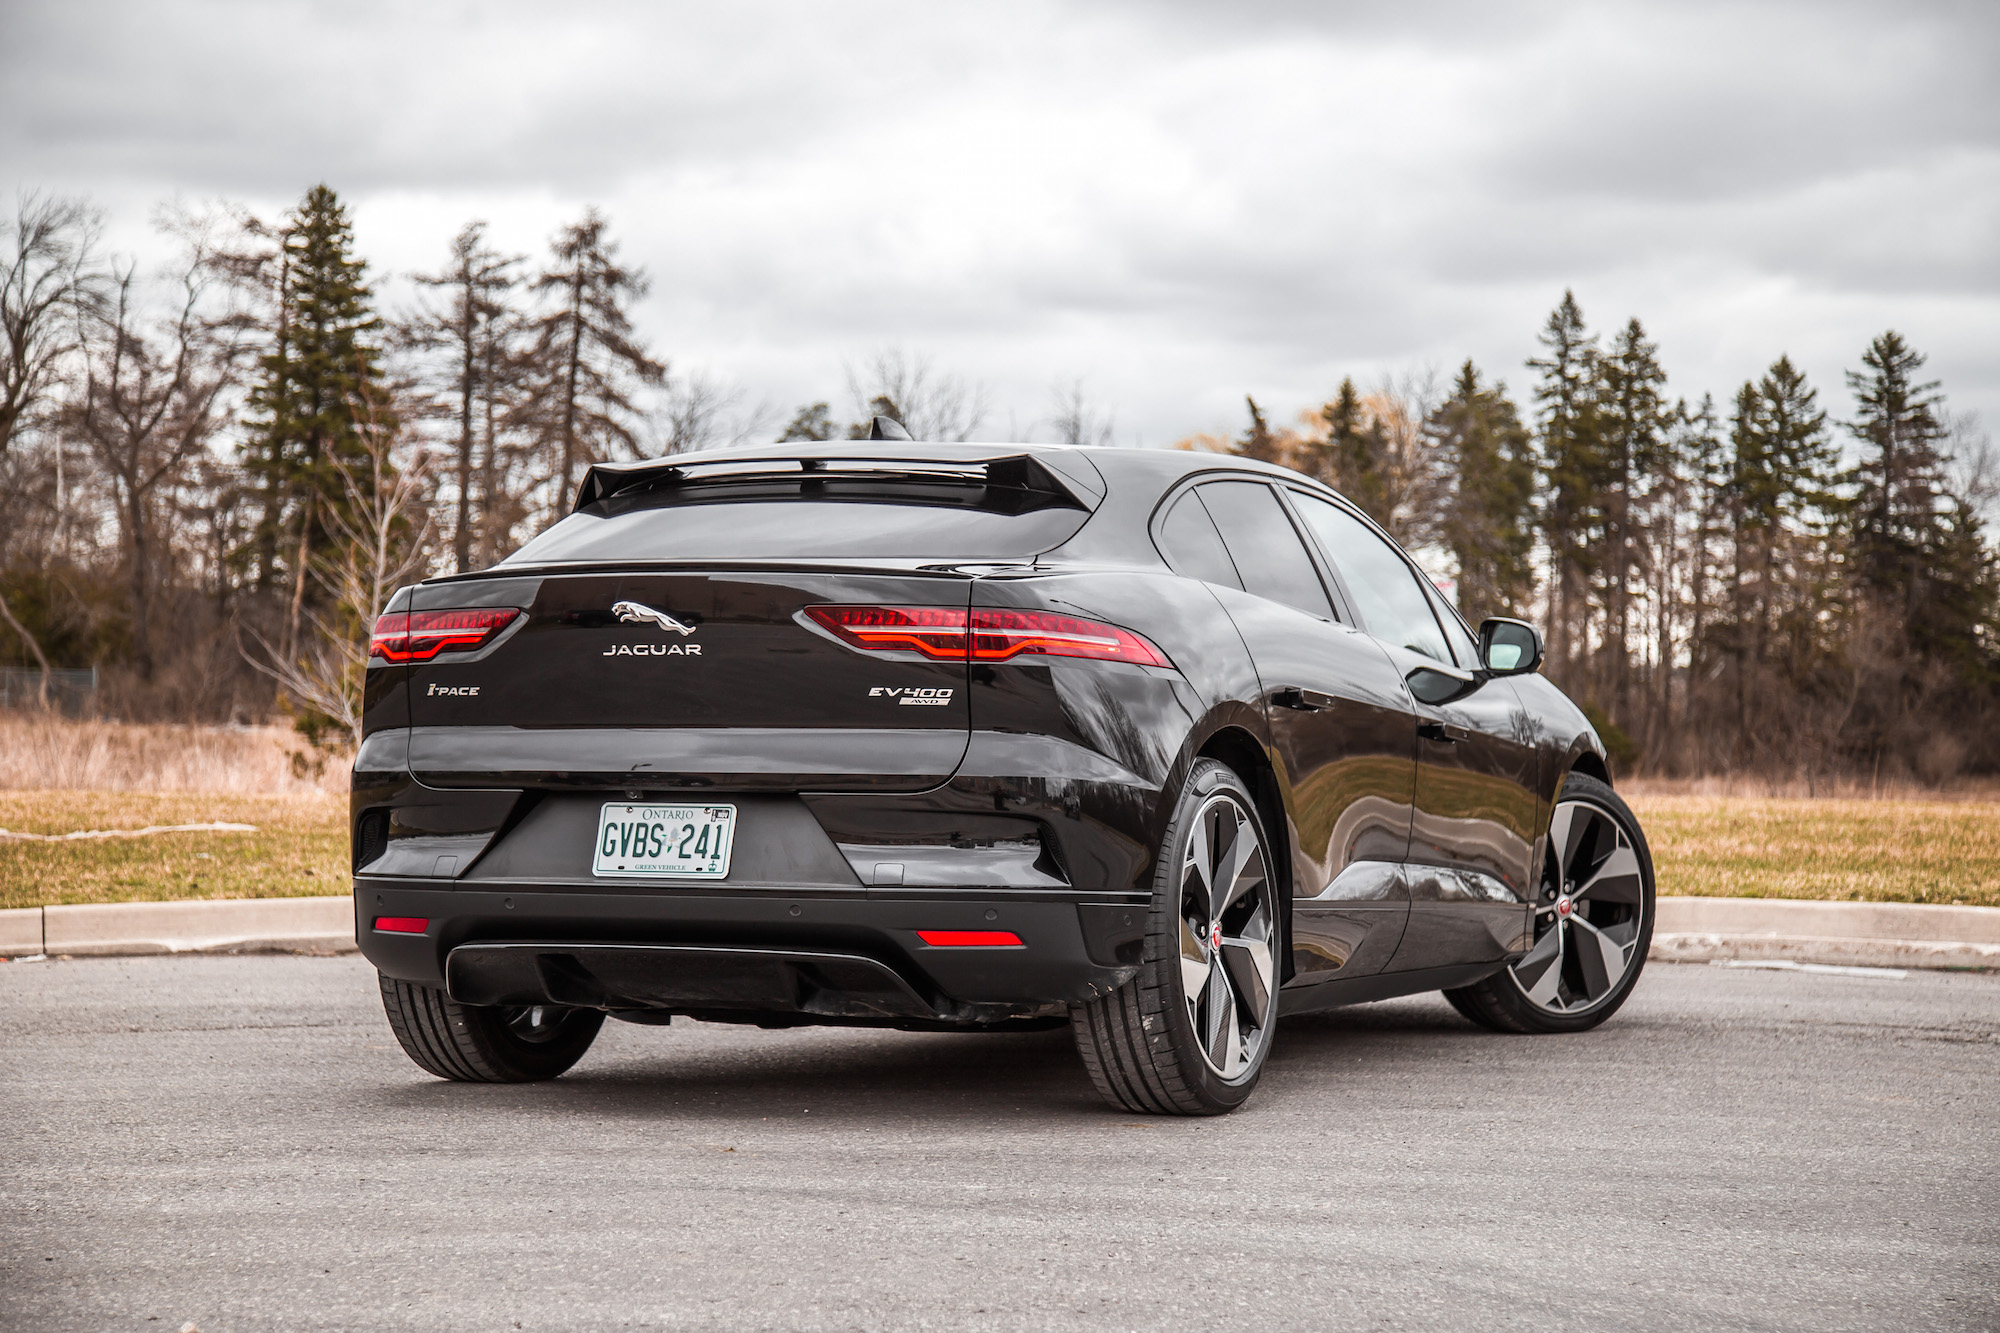 Awd Electric Car >> Review: 2019 Jaguar I-Pace EV 400 HSE | CAR